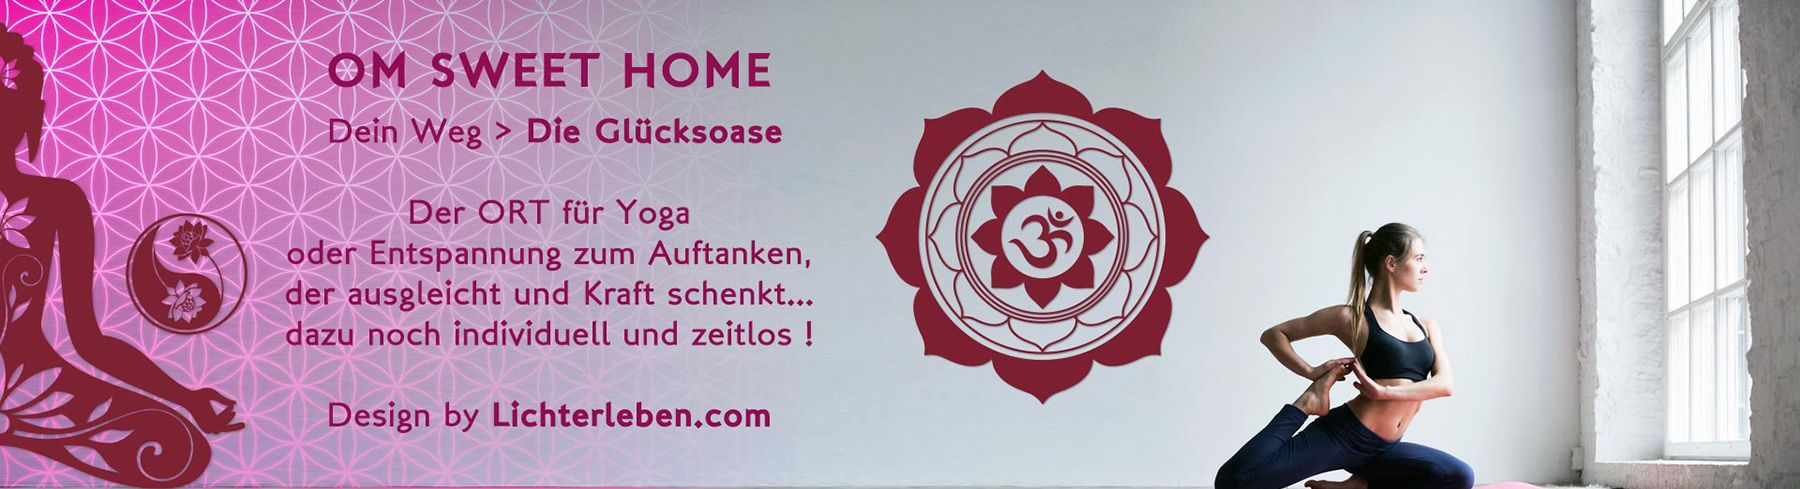 Wandtattoo Design Wandtattoo Design Shop Unser Neuer Wordpress Shop Yogainspiration